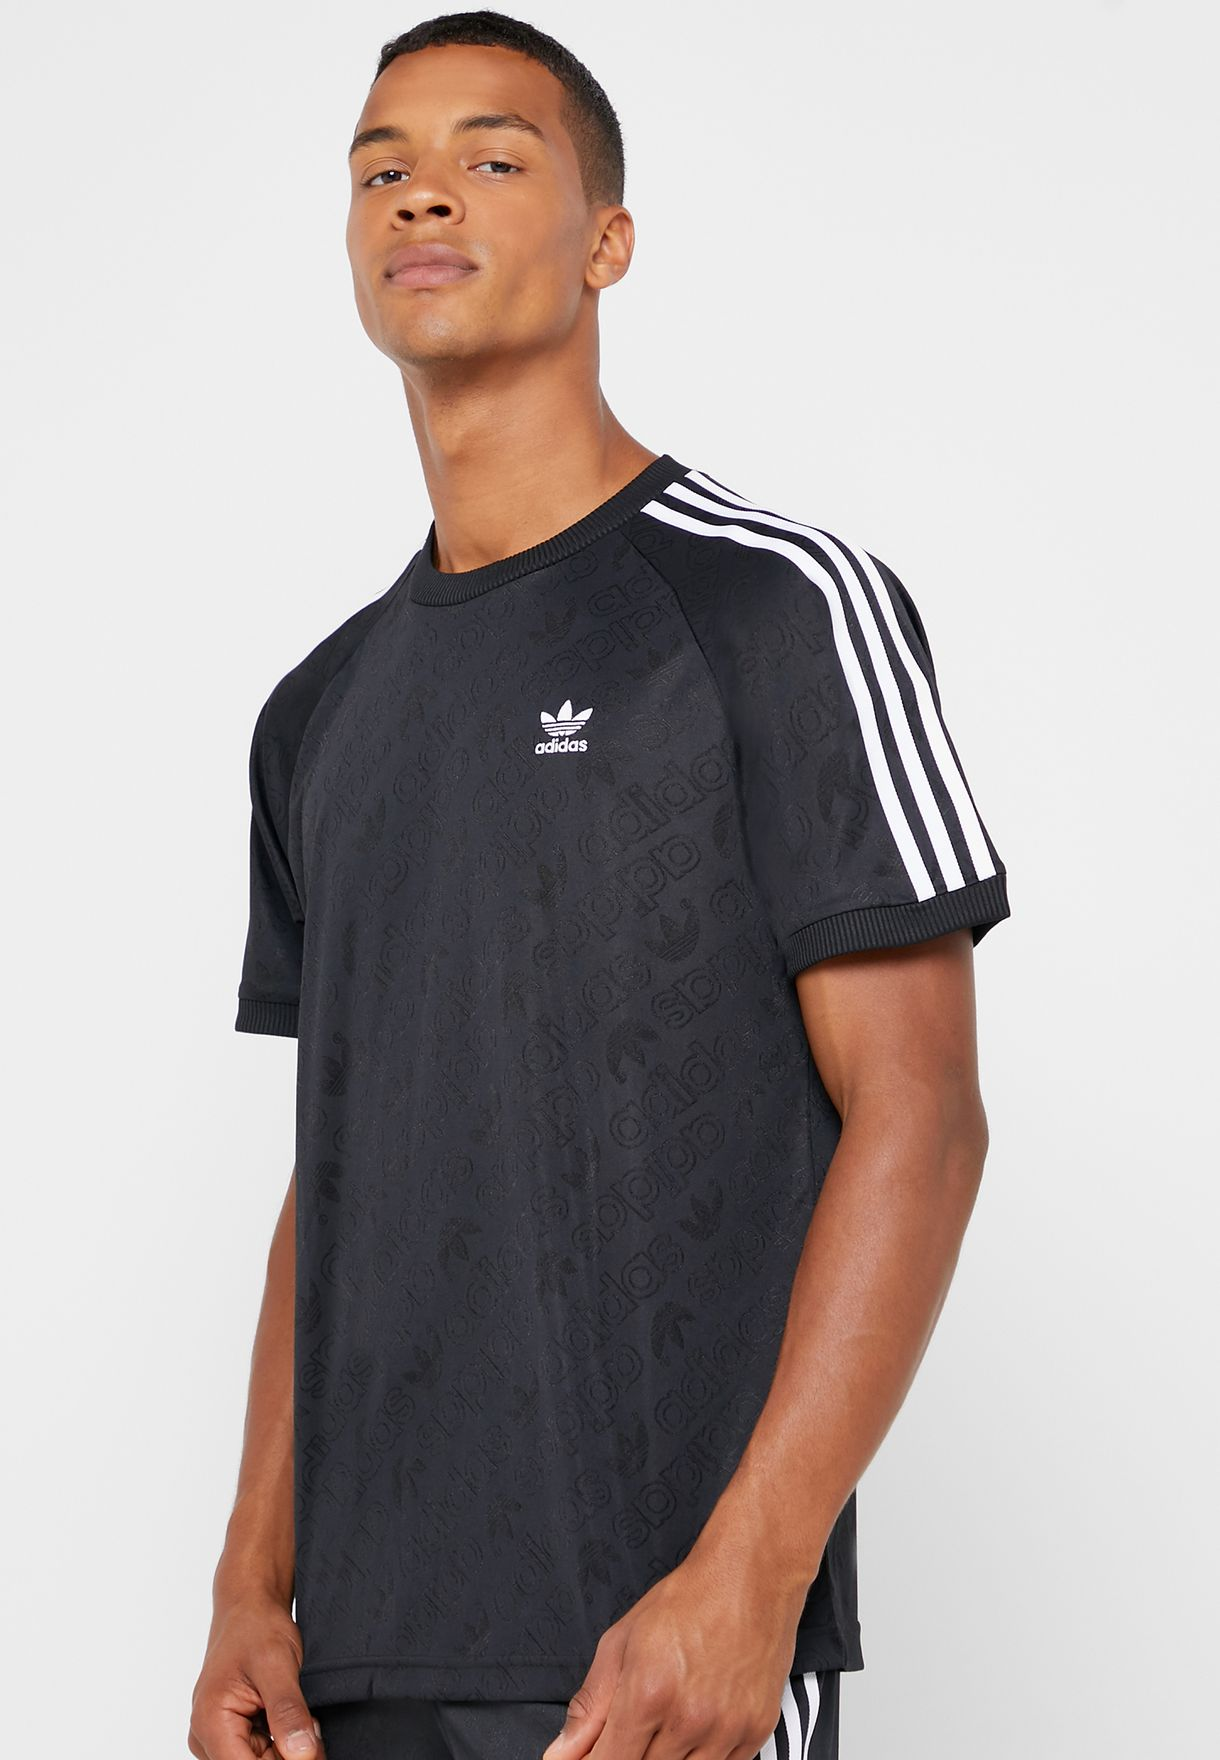 Adidas Originals Monogram T Shirts ab 18,36